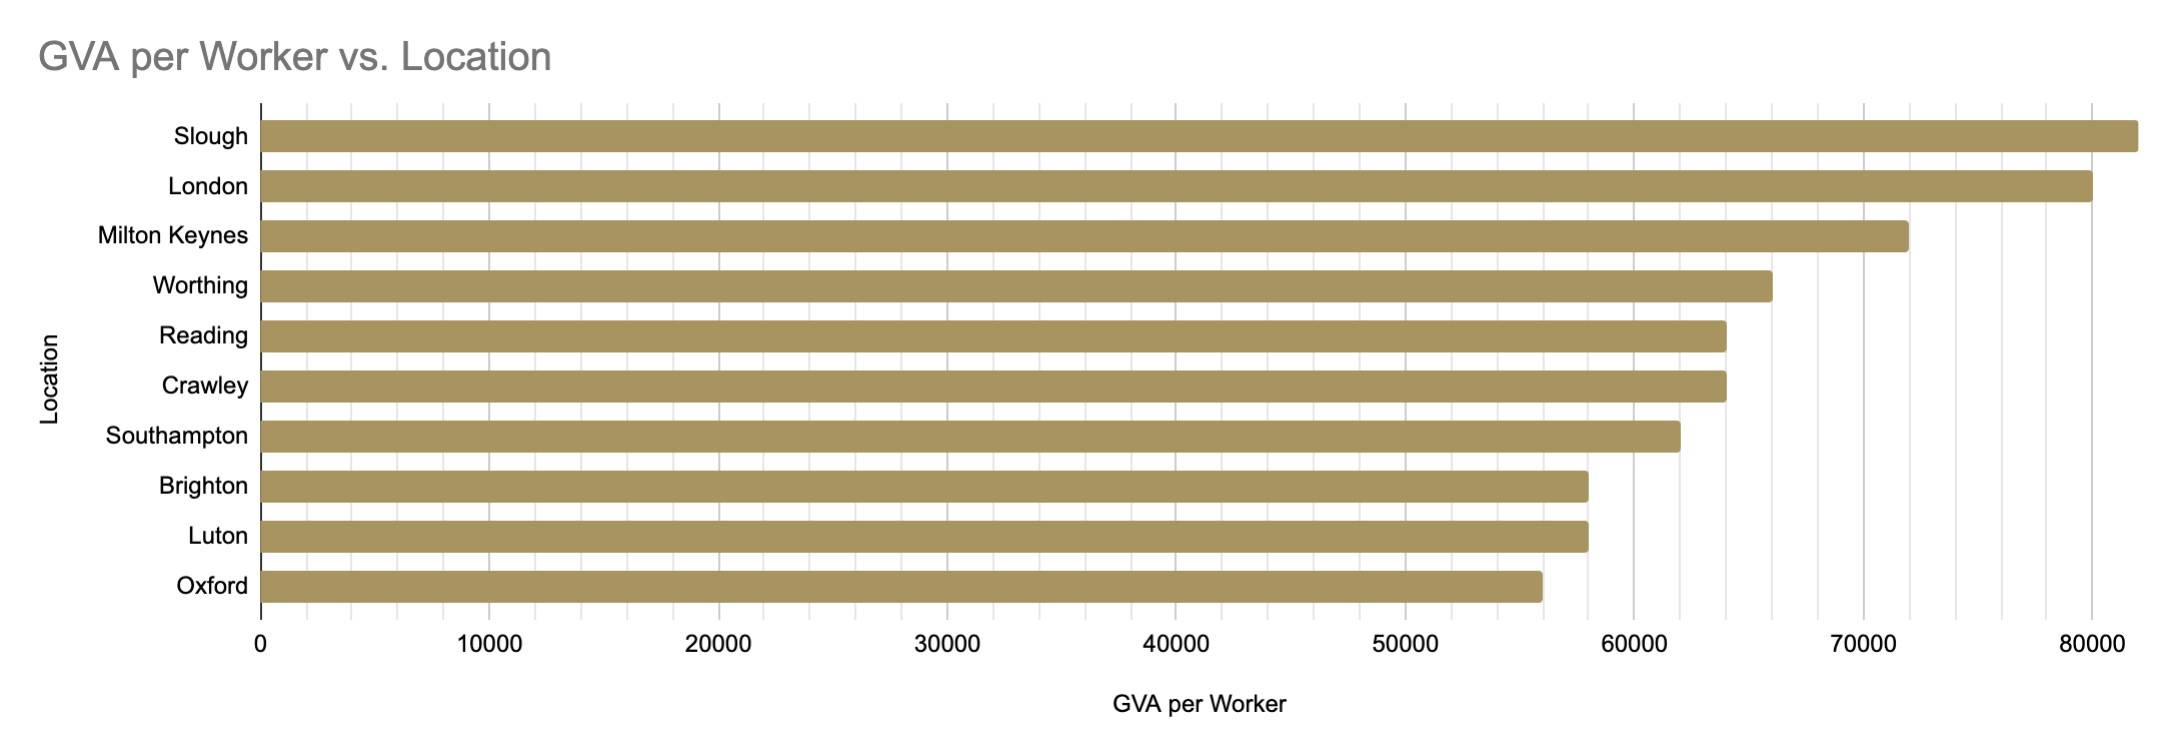 GVA Per Worker - Location